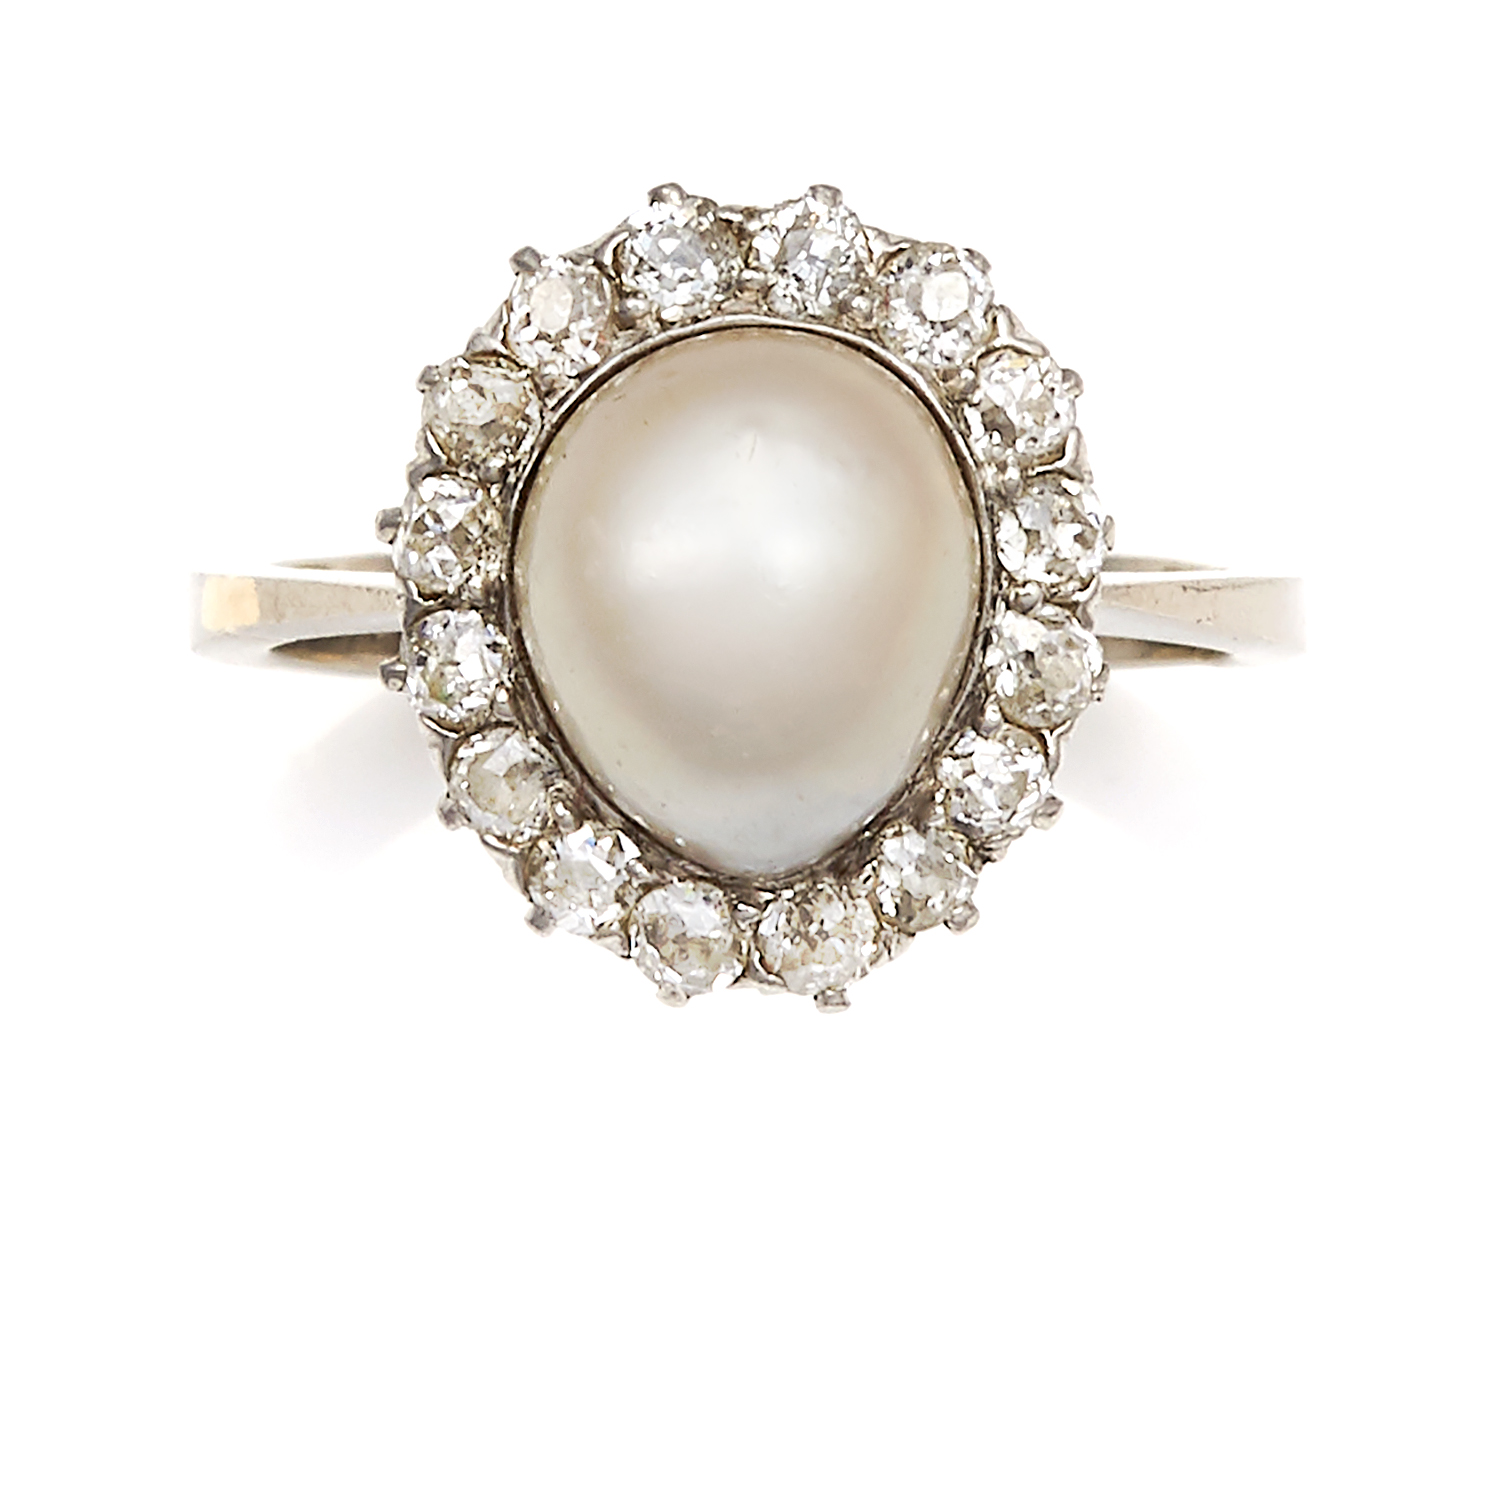 Los 47 - A NATURAL SALTWATER PEARL AND DIAMOND CLUSTER RING in platinum, set with a central pearl of 9.8mm